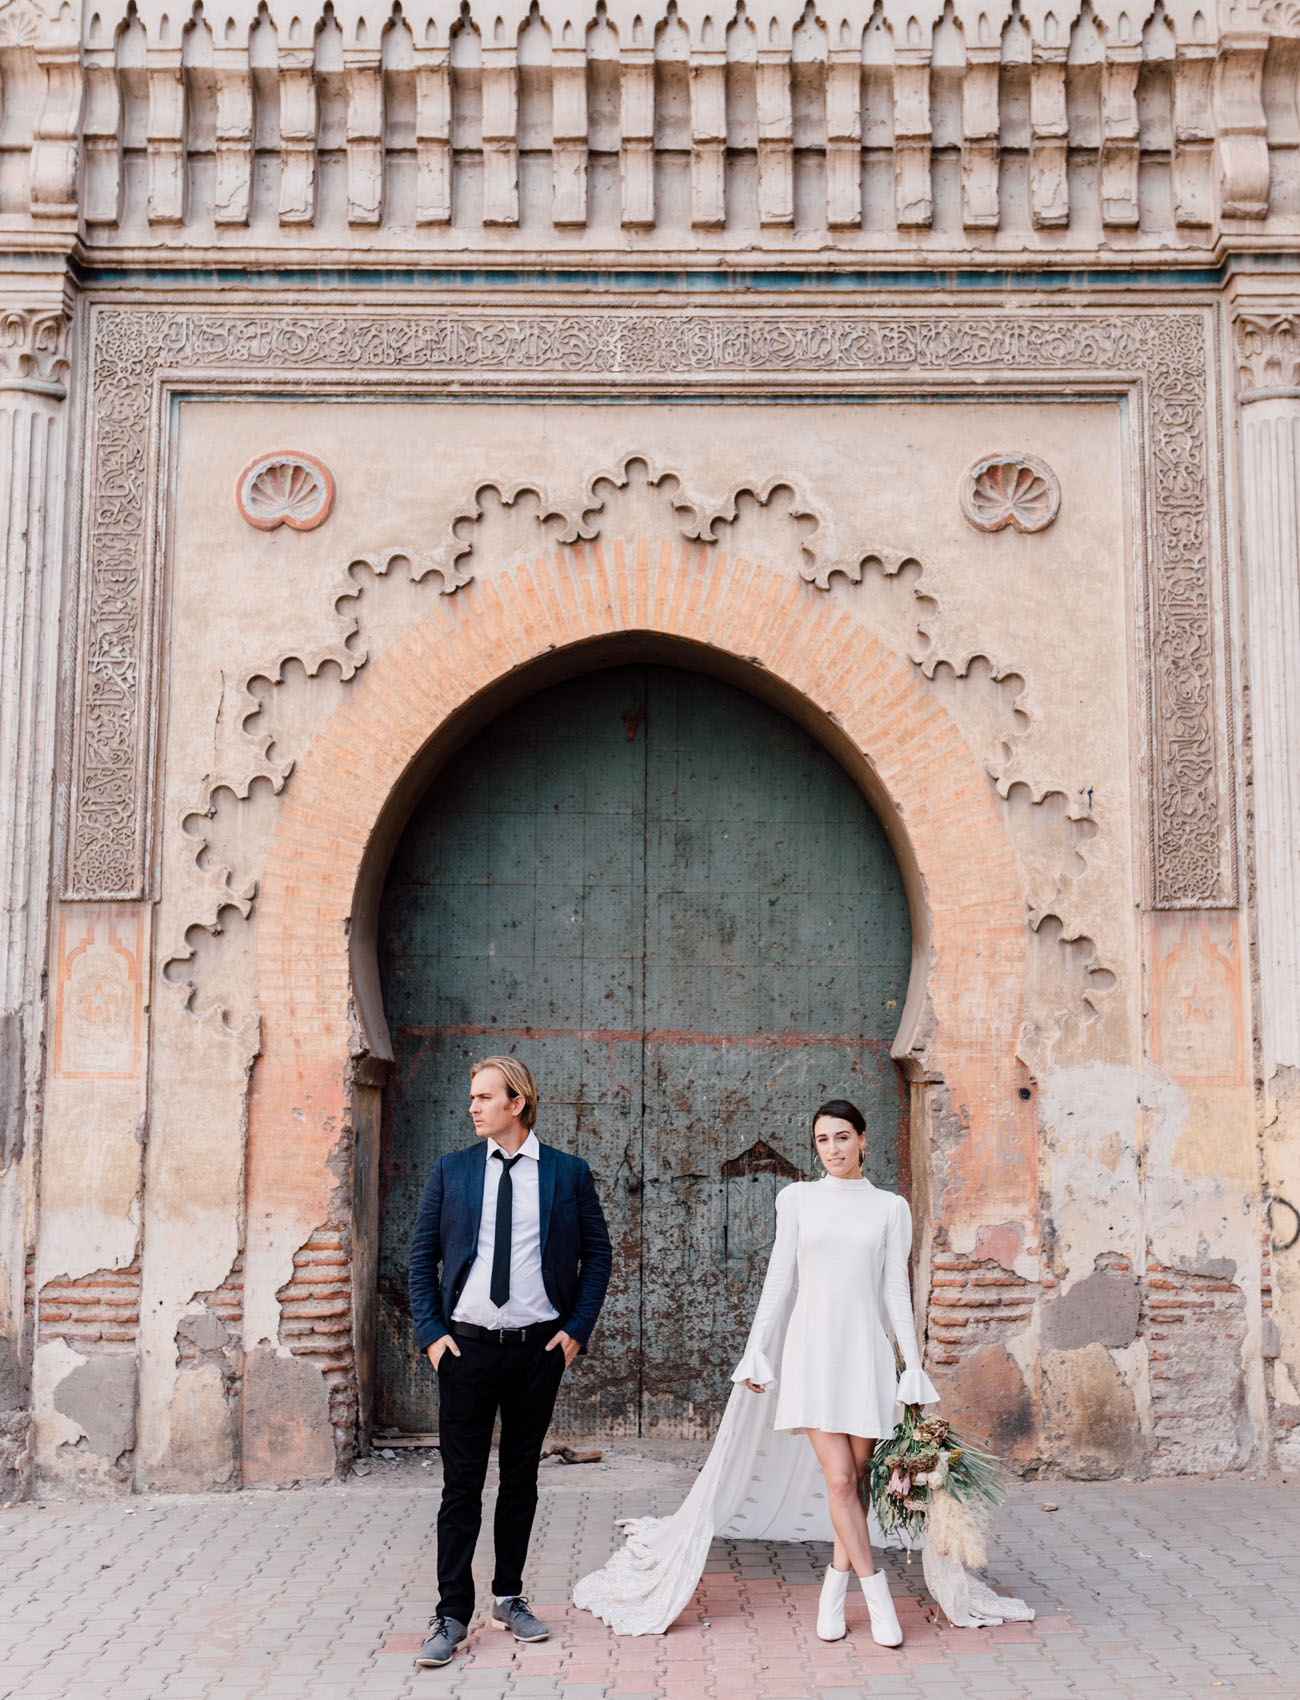 From the City to the Desert: A Getaway Elopement in Magical Morocco